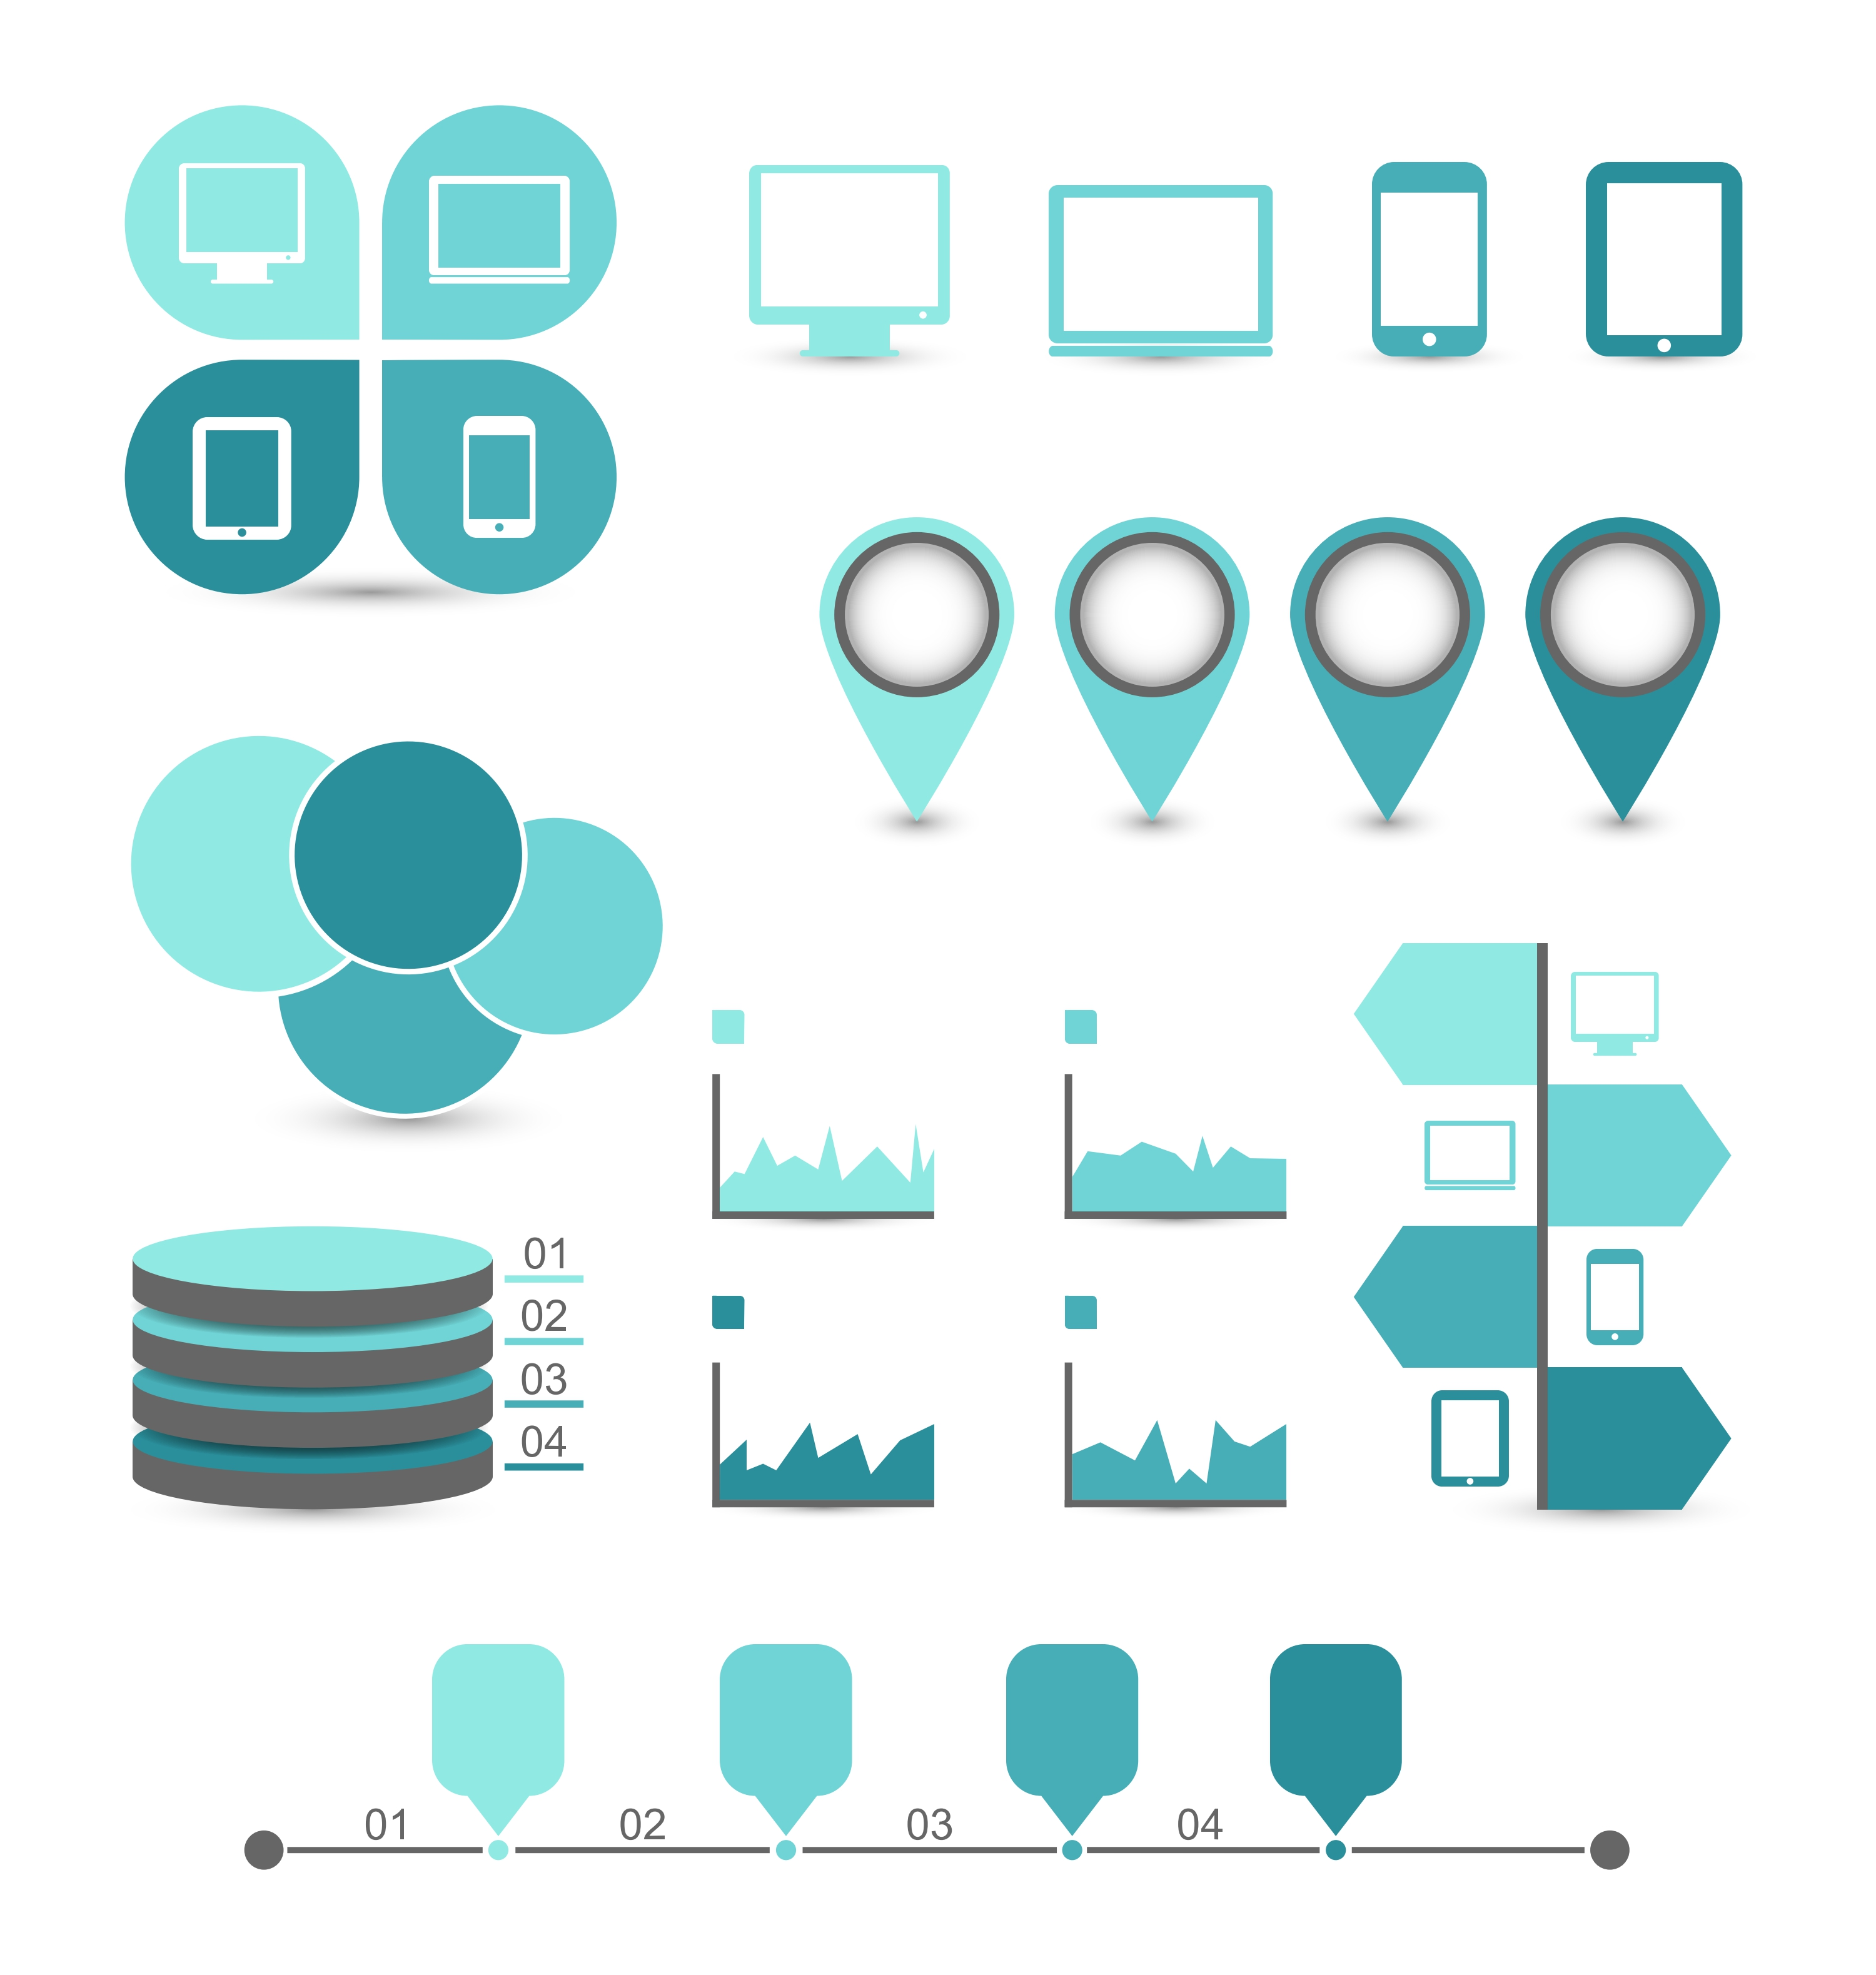 13 Free Infographic Design Images - Free Infographic ...